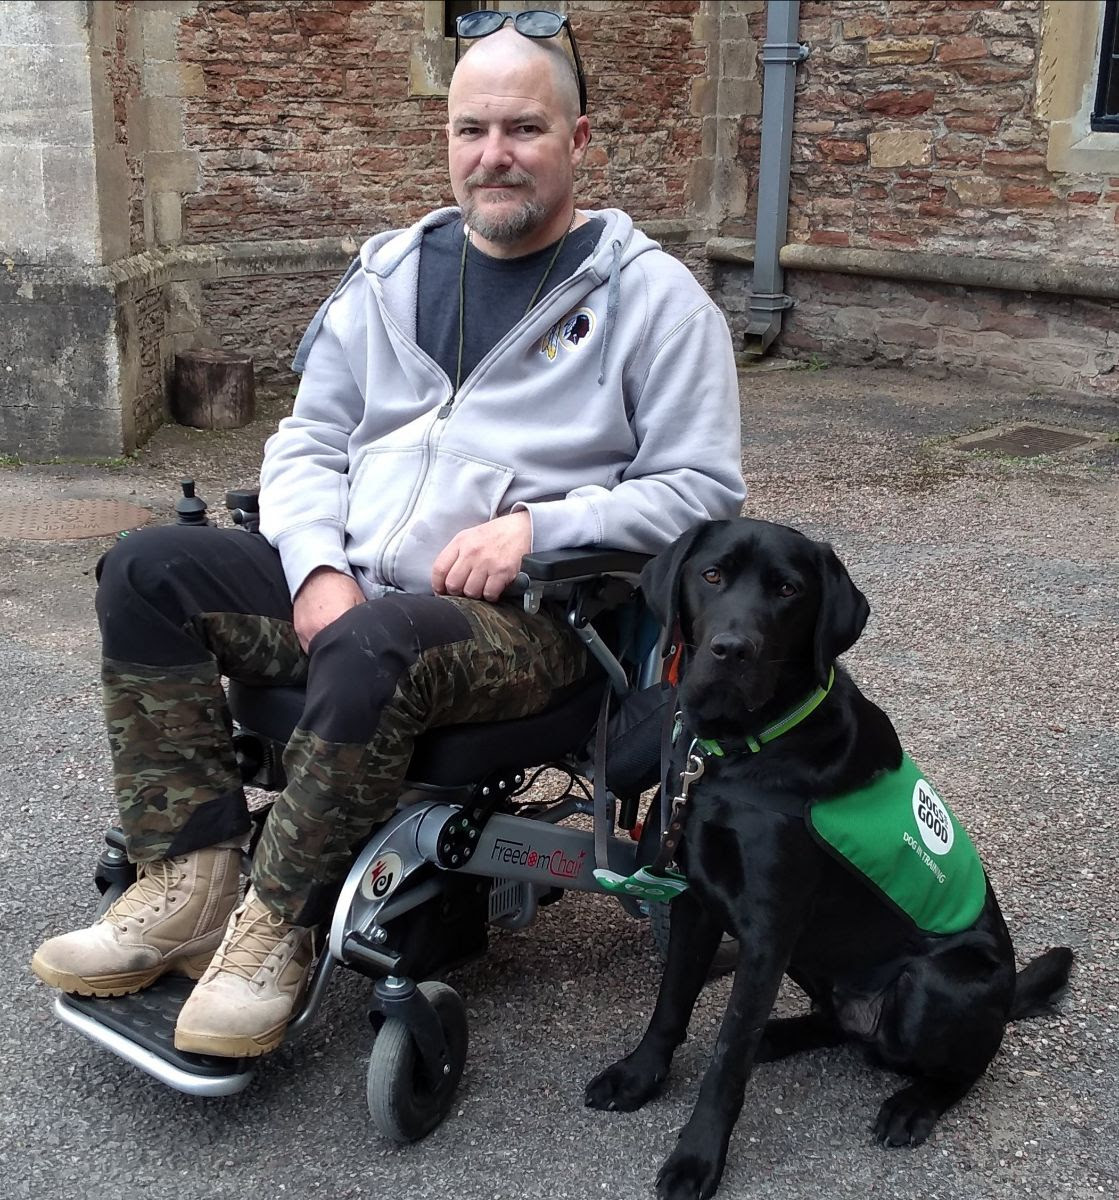 Service dog responds to electronic commands - Health News